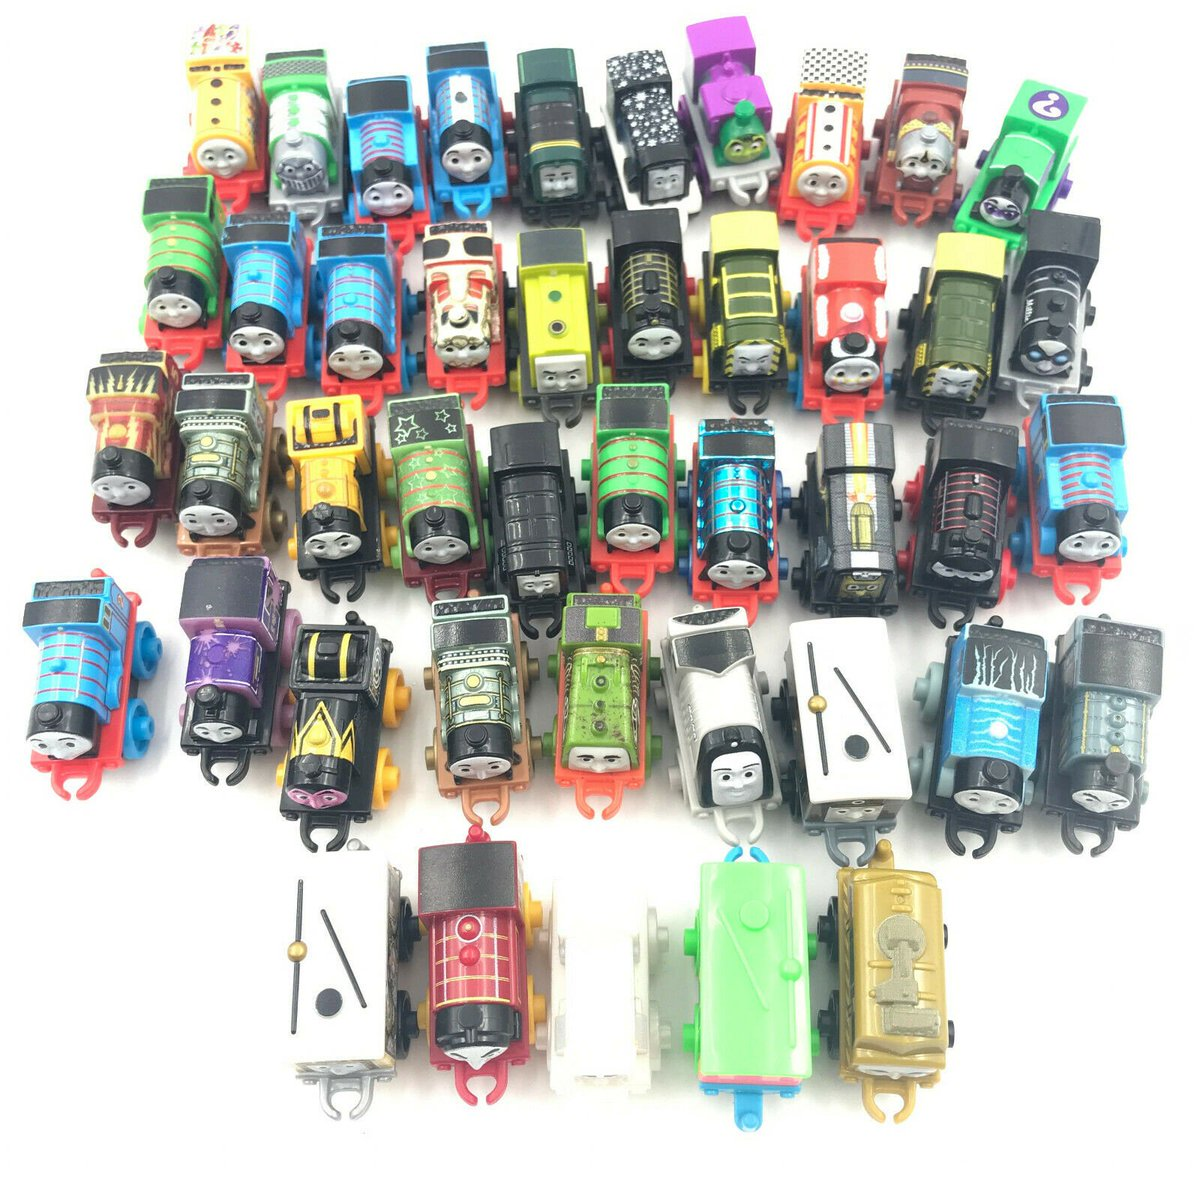 Is your little one obsessed with Thomas the Train? Christmas is just around the corner and these little trains would thrill them. :) #thomasthetrain  #train  #toy  #Thomasthetrainandfriends  #engines  #toys  #play   #Christmasgift  #present  #gift  #forsale  #ebay   https://ebay.to/2O2Pl7X